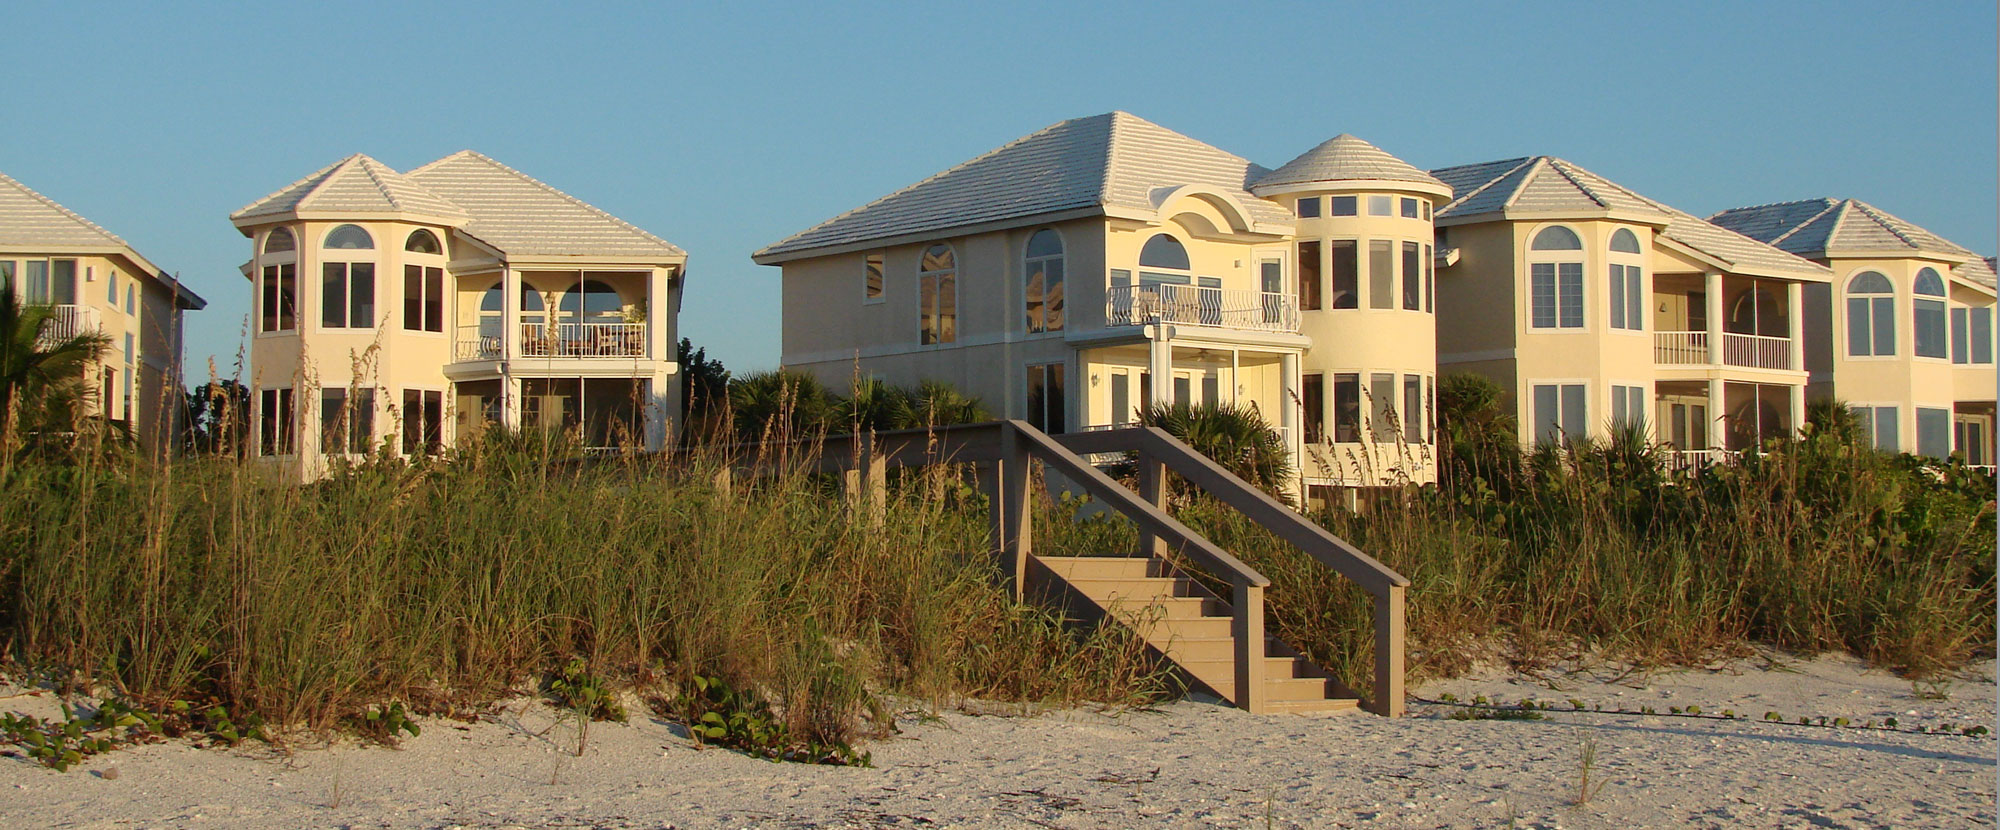 A row of expensive beach houses